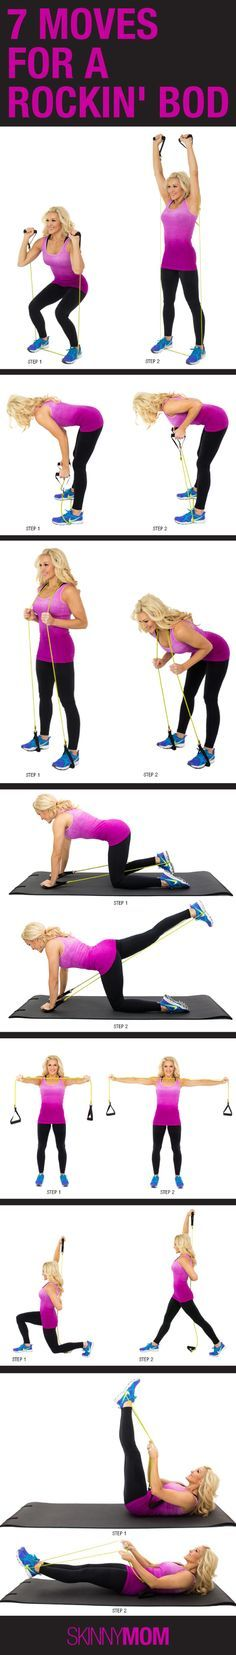 Get a ROCKIN' BOD with this workout!